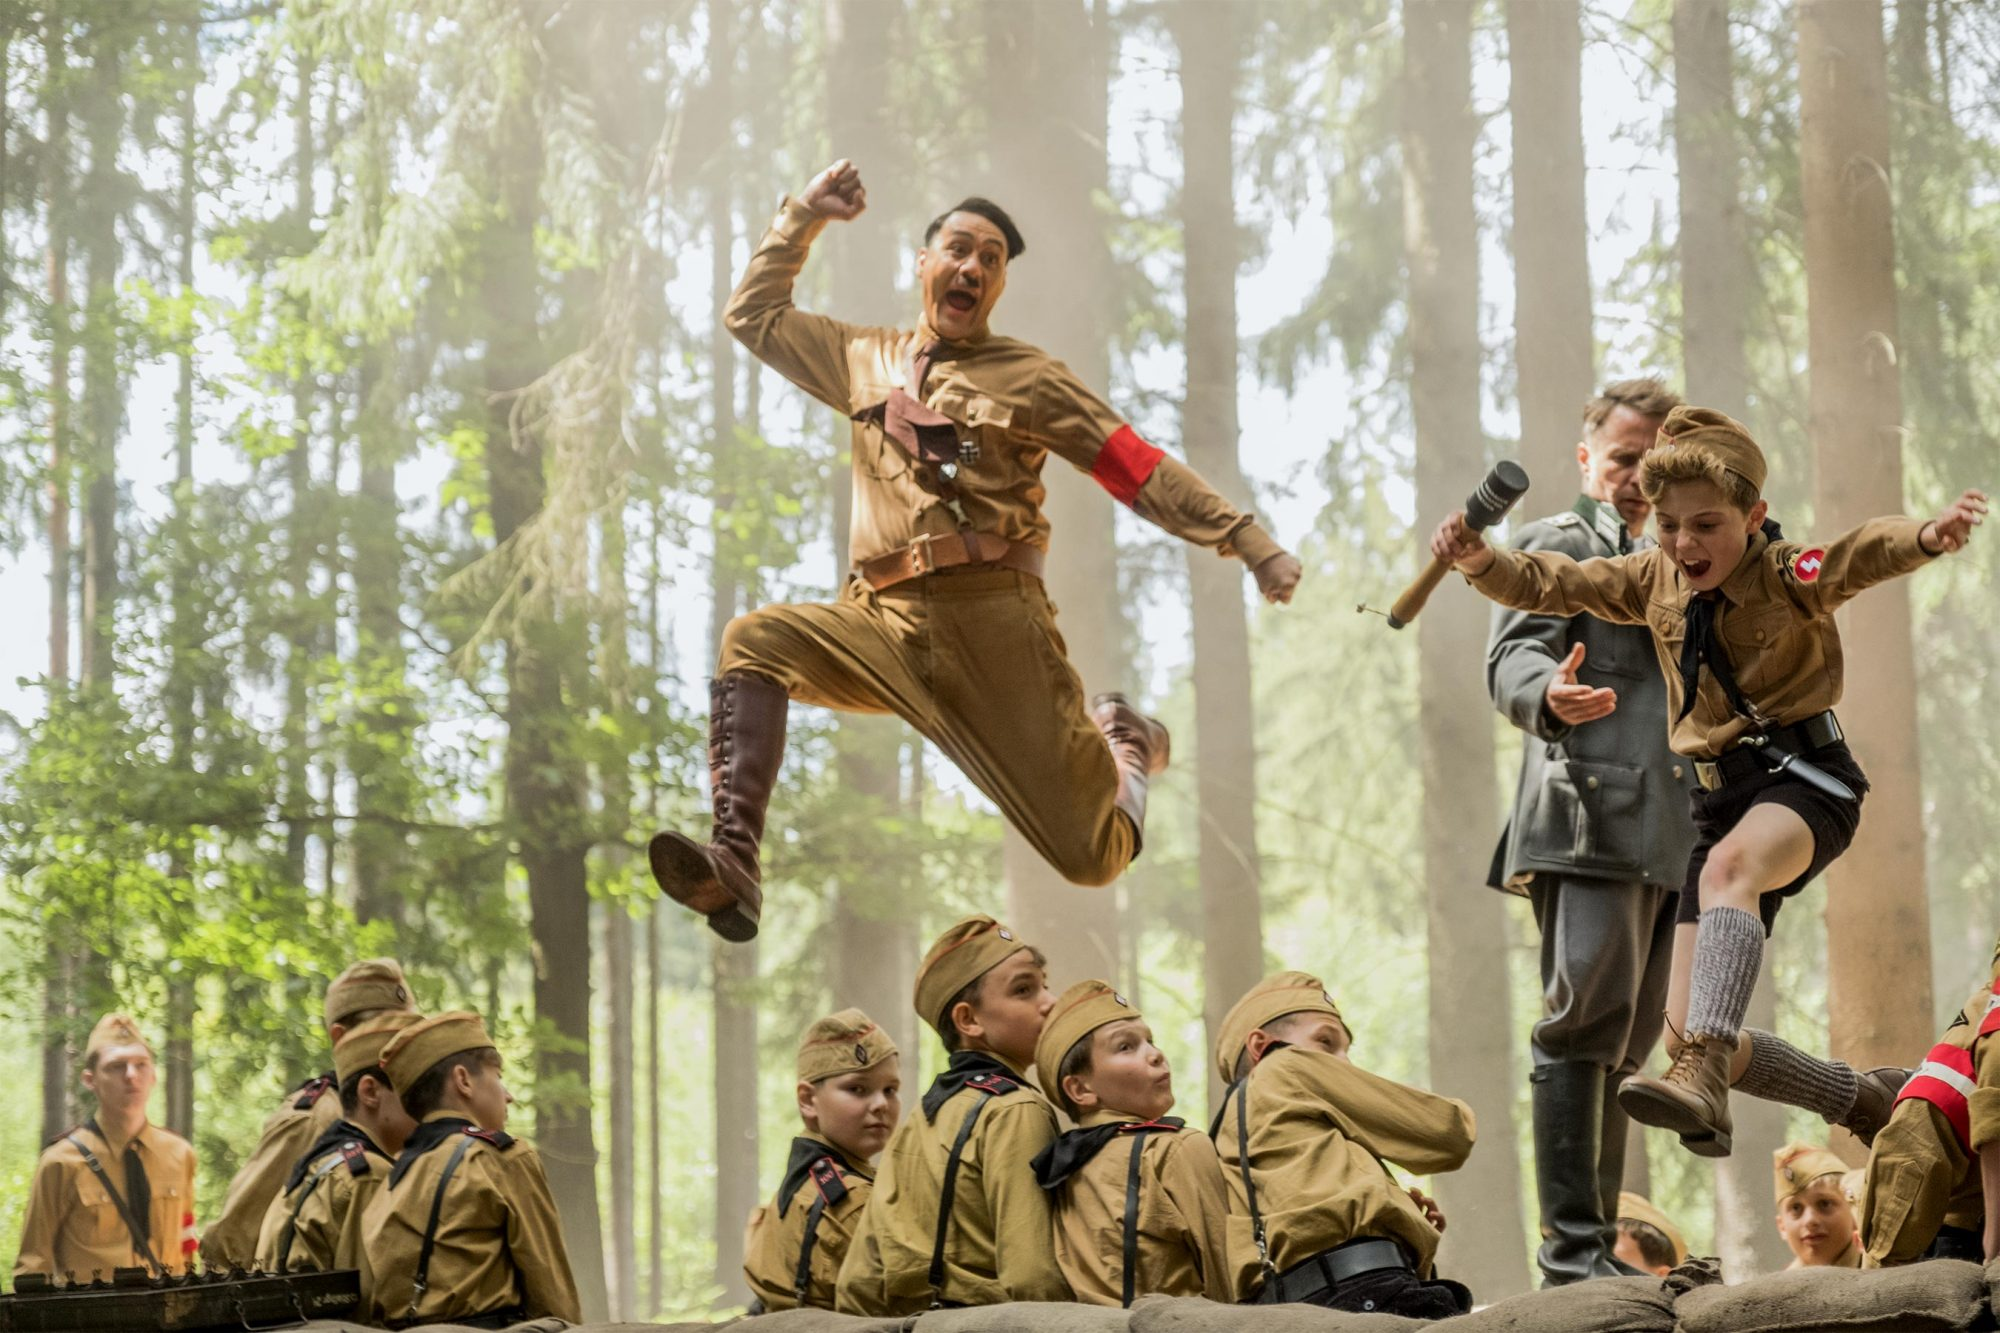 Taika Waititi and Roman Griffin Davis in the film JOJO RABBIT. Photo by Kimberley French. © 2019 Twentieth Century Fox Film Corporation All Rights Reserved CR: Kimberley French/Twentieth Century Fox